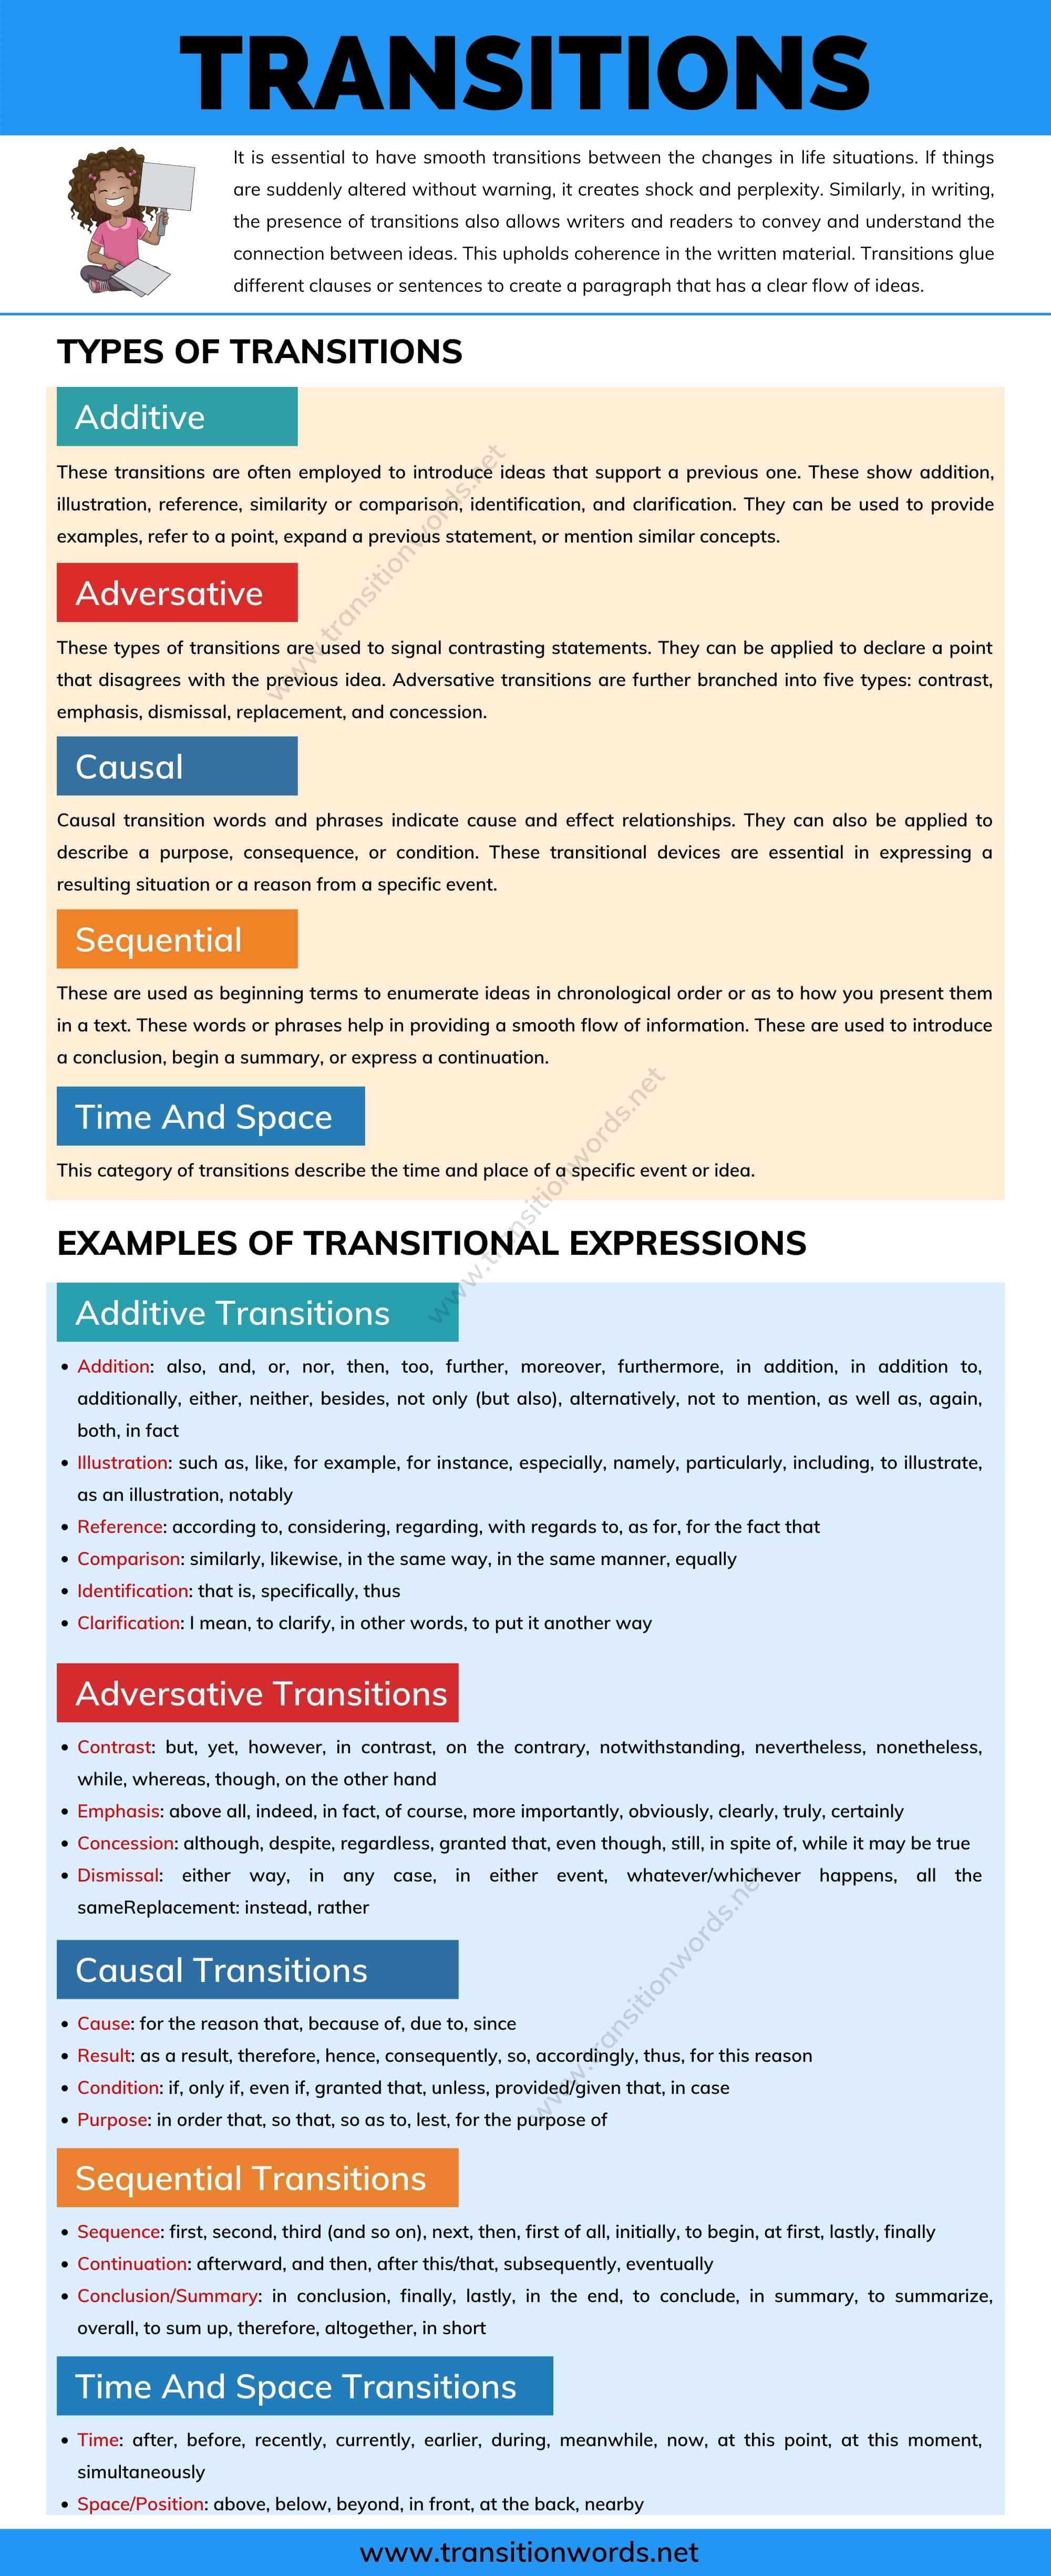 Transitions: Types of Transitions & Examples Of Transitional Expressions